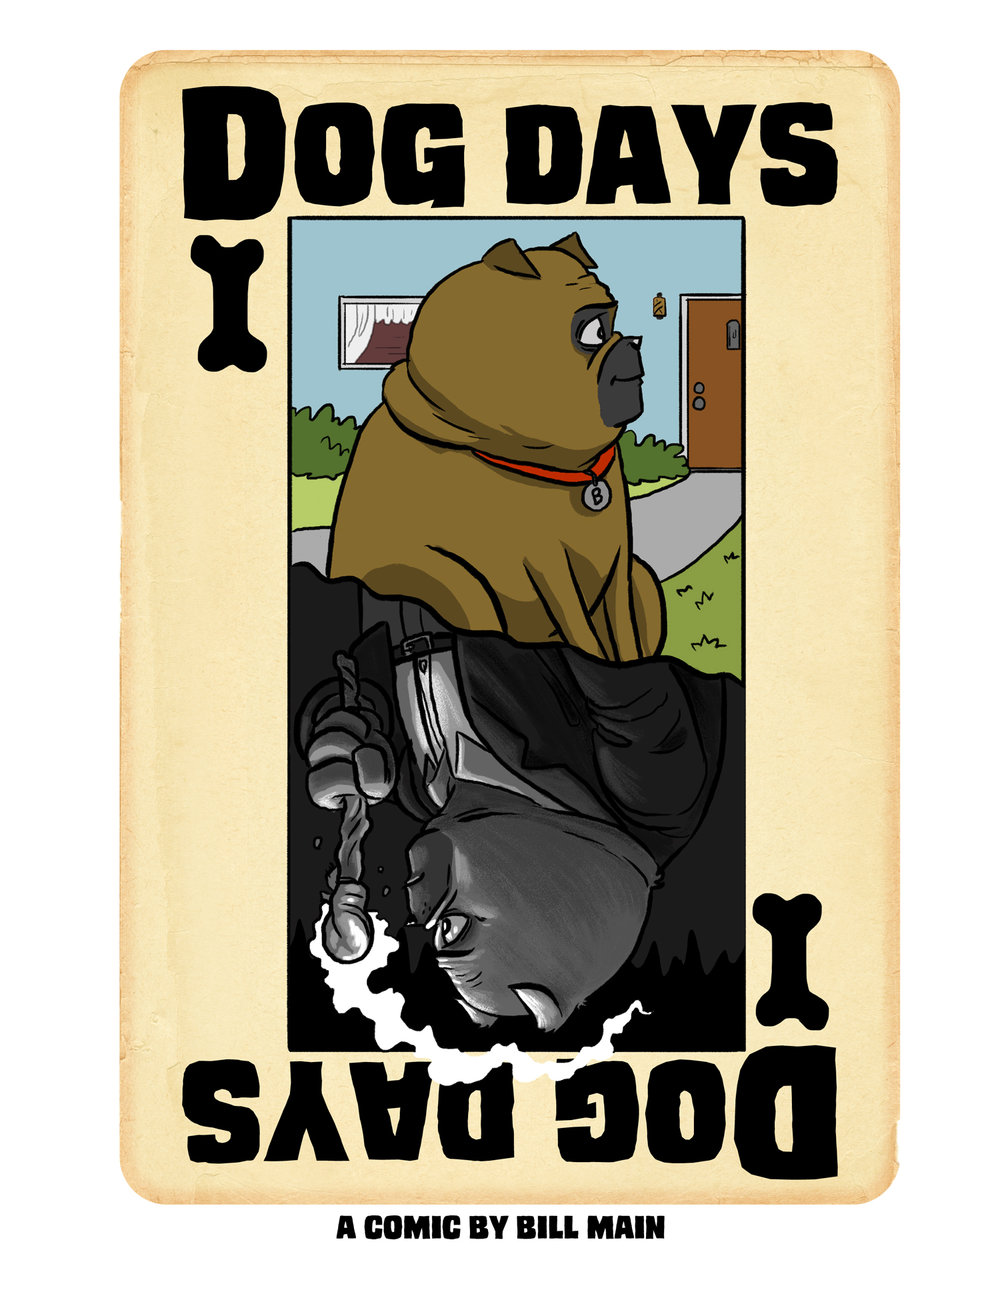 Dog-Days-Title-Card.jpg